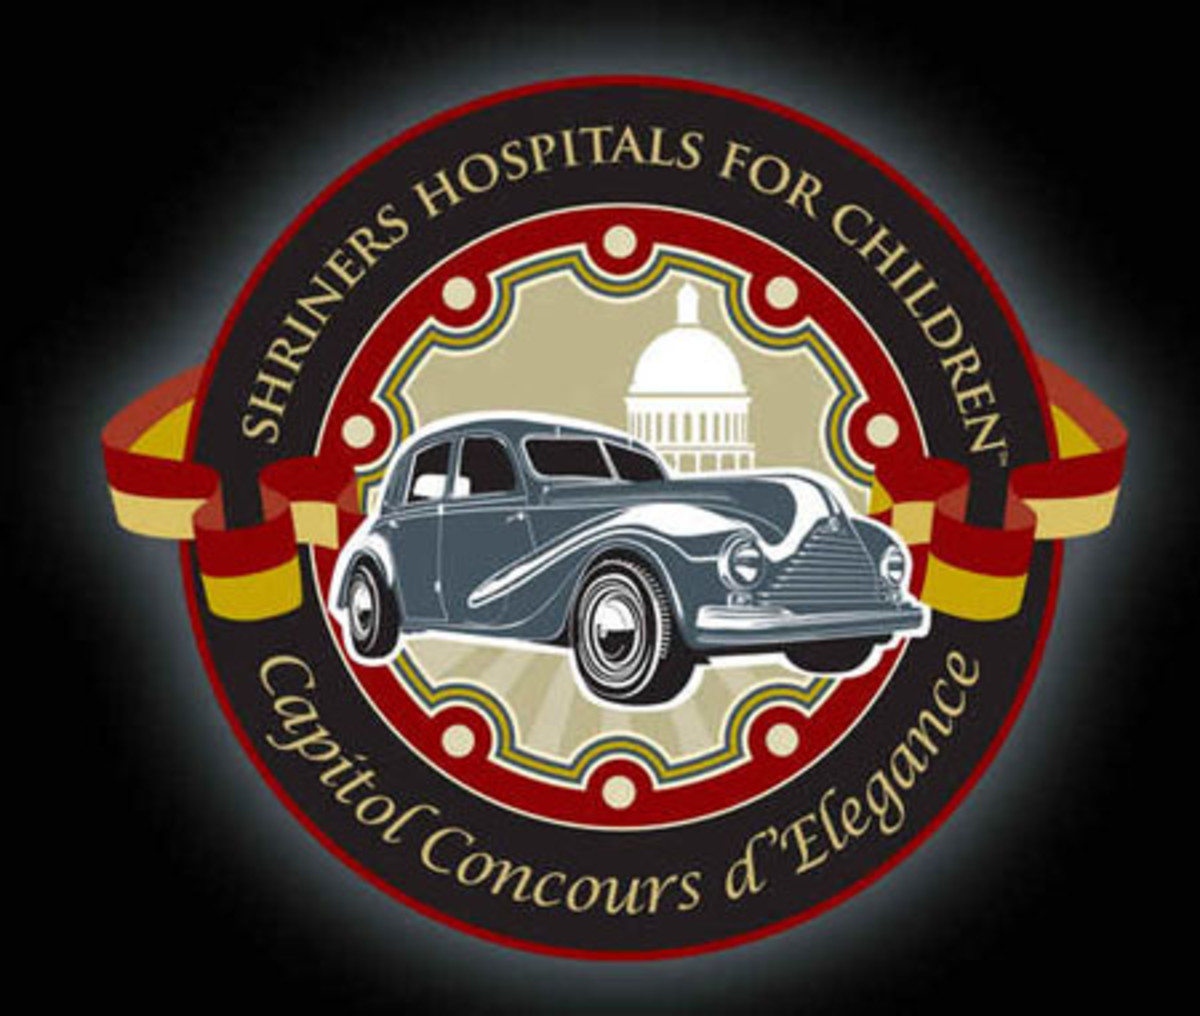 Capitol Concours Shriners Hospital